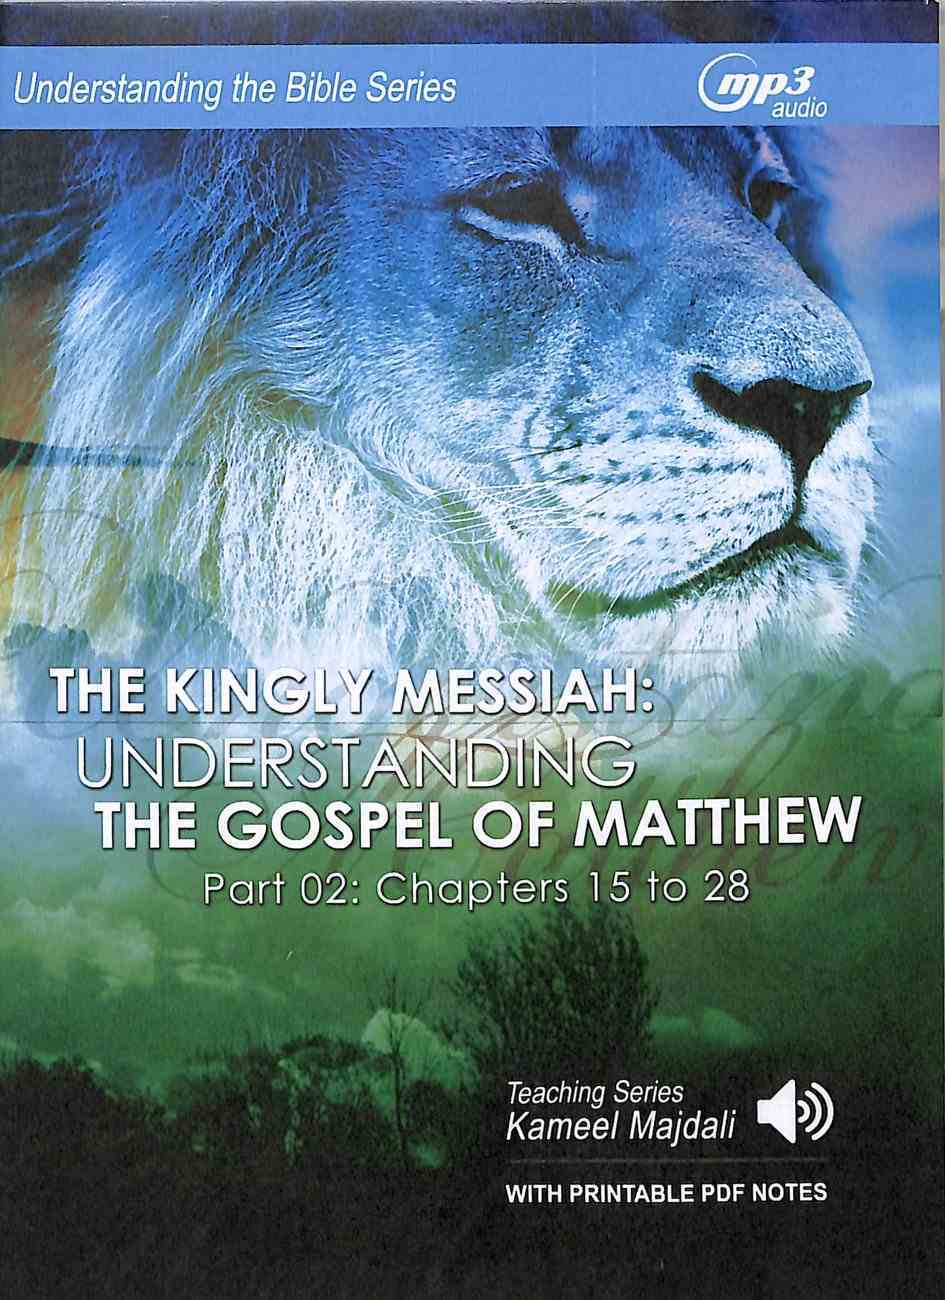 Kingly Messiah, the : Understanding the Gospel of Matthew, Chapters 15 to 28 (With Printable Pdf Notes) (MP3 Audio, 20 Hrs) (Understanding The Bible Audio Series) CD